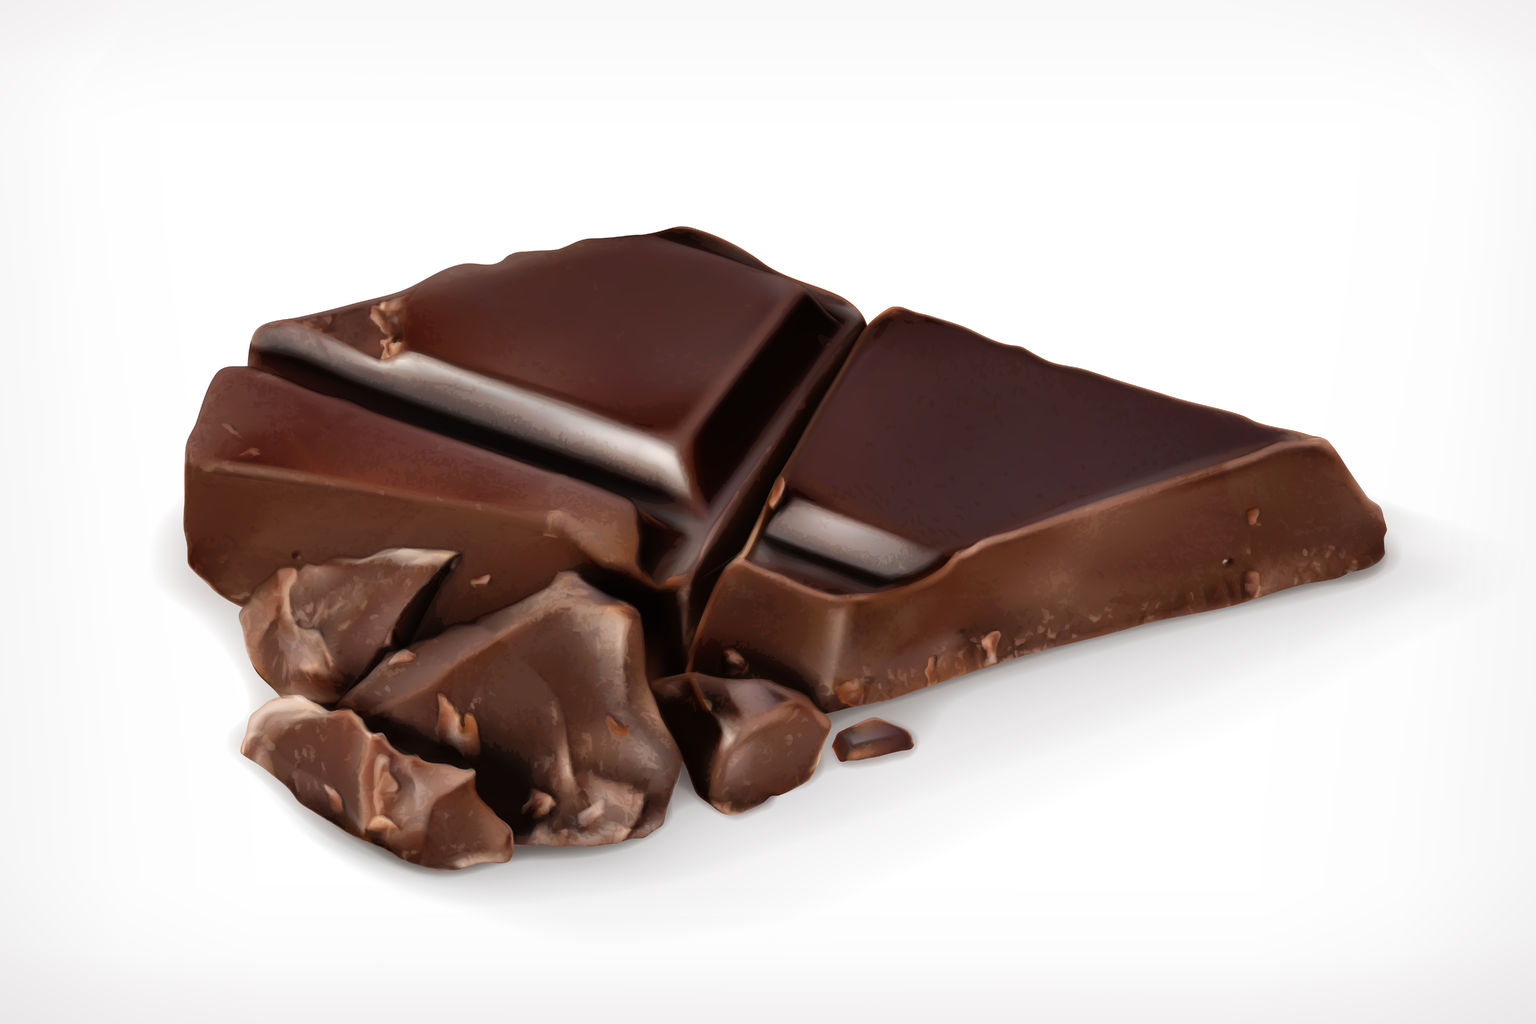 dark chocolate prevents coronary heart disease, stroke and diabetes